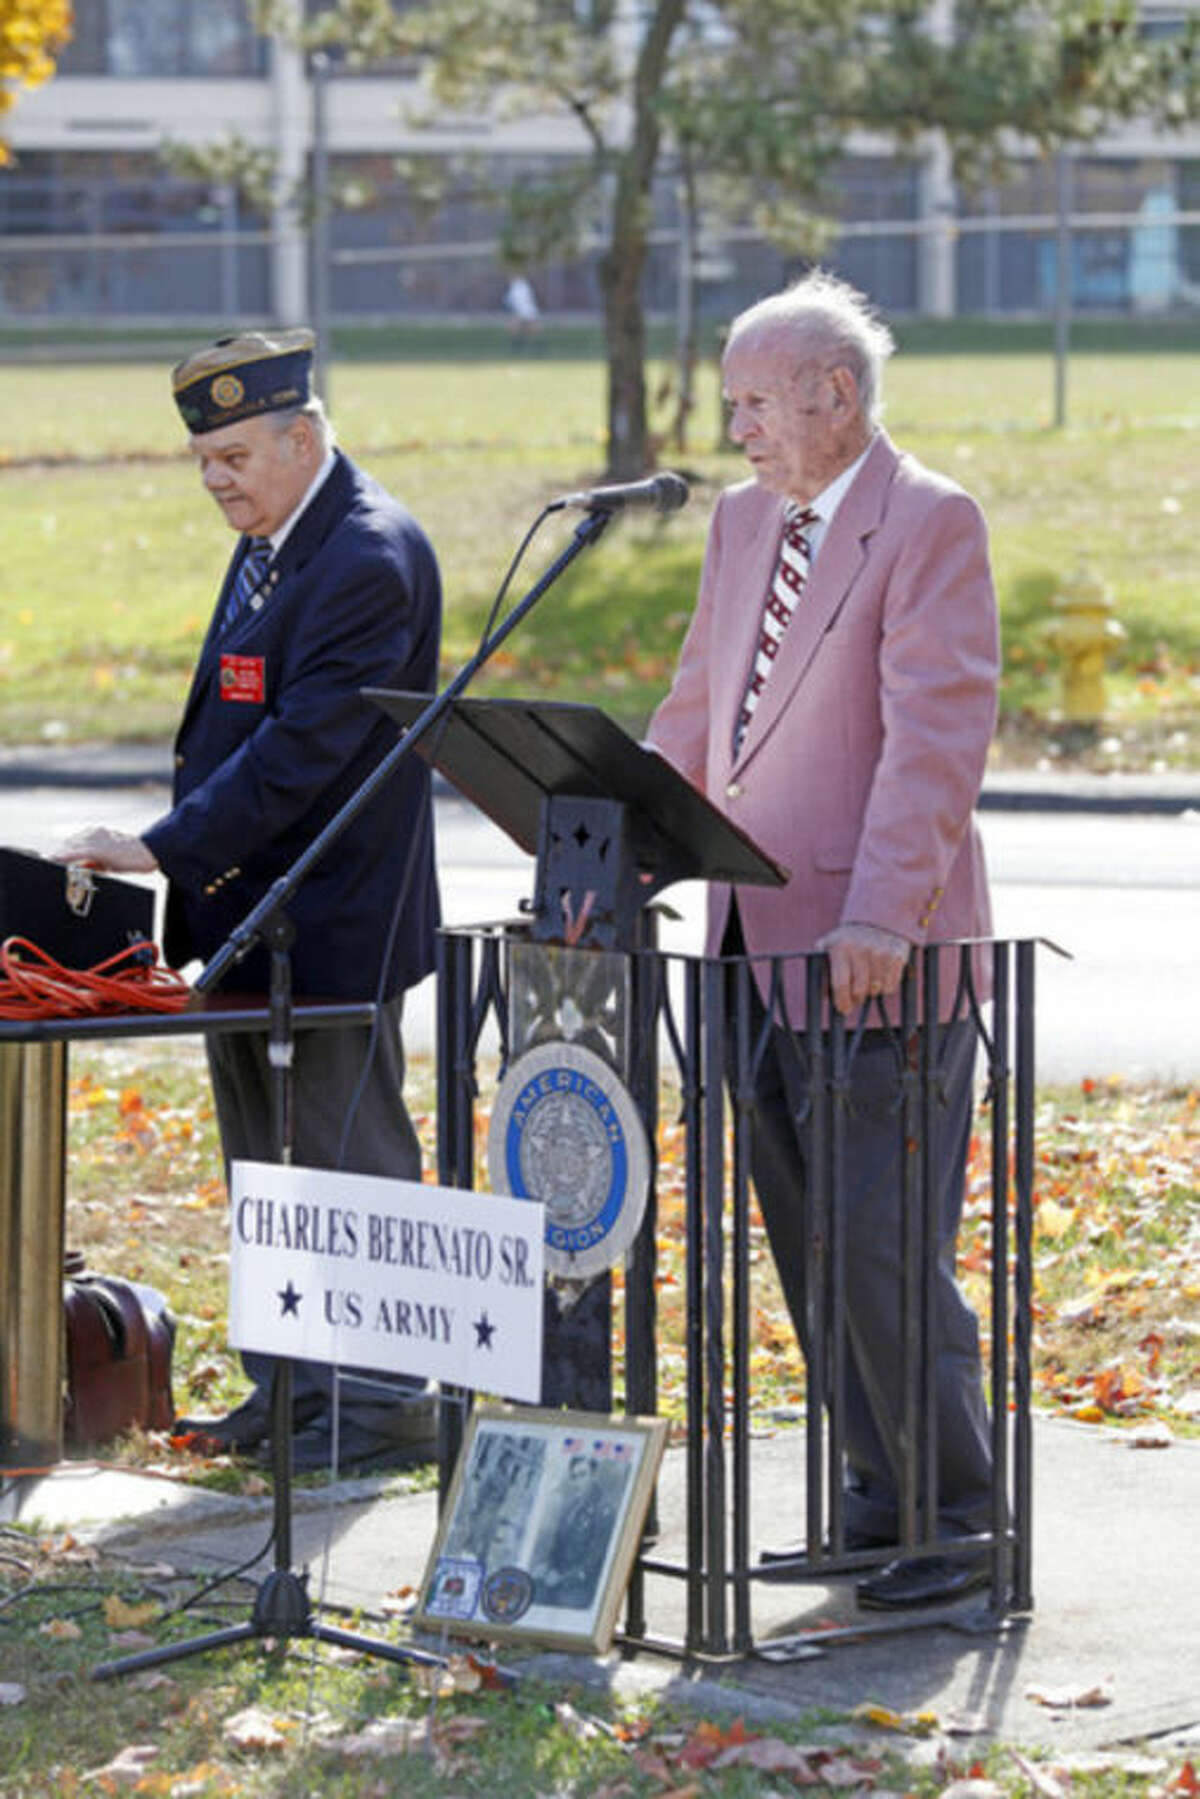 Frank Gallo speaks about Charles Berenato Sr. whom he served with at the American Legion Hall's Veteran of the Month ceremony Sunday morning. Hour Photo / Danielle Calloway